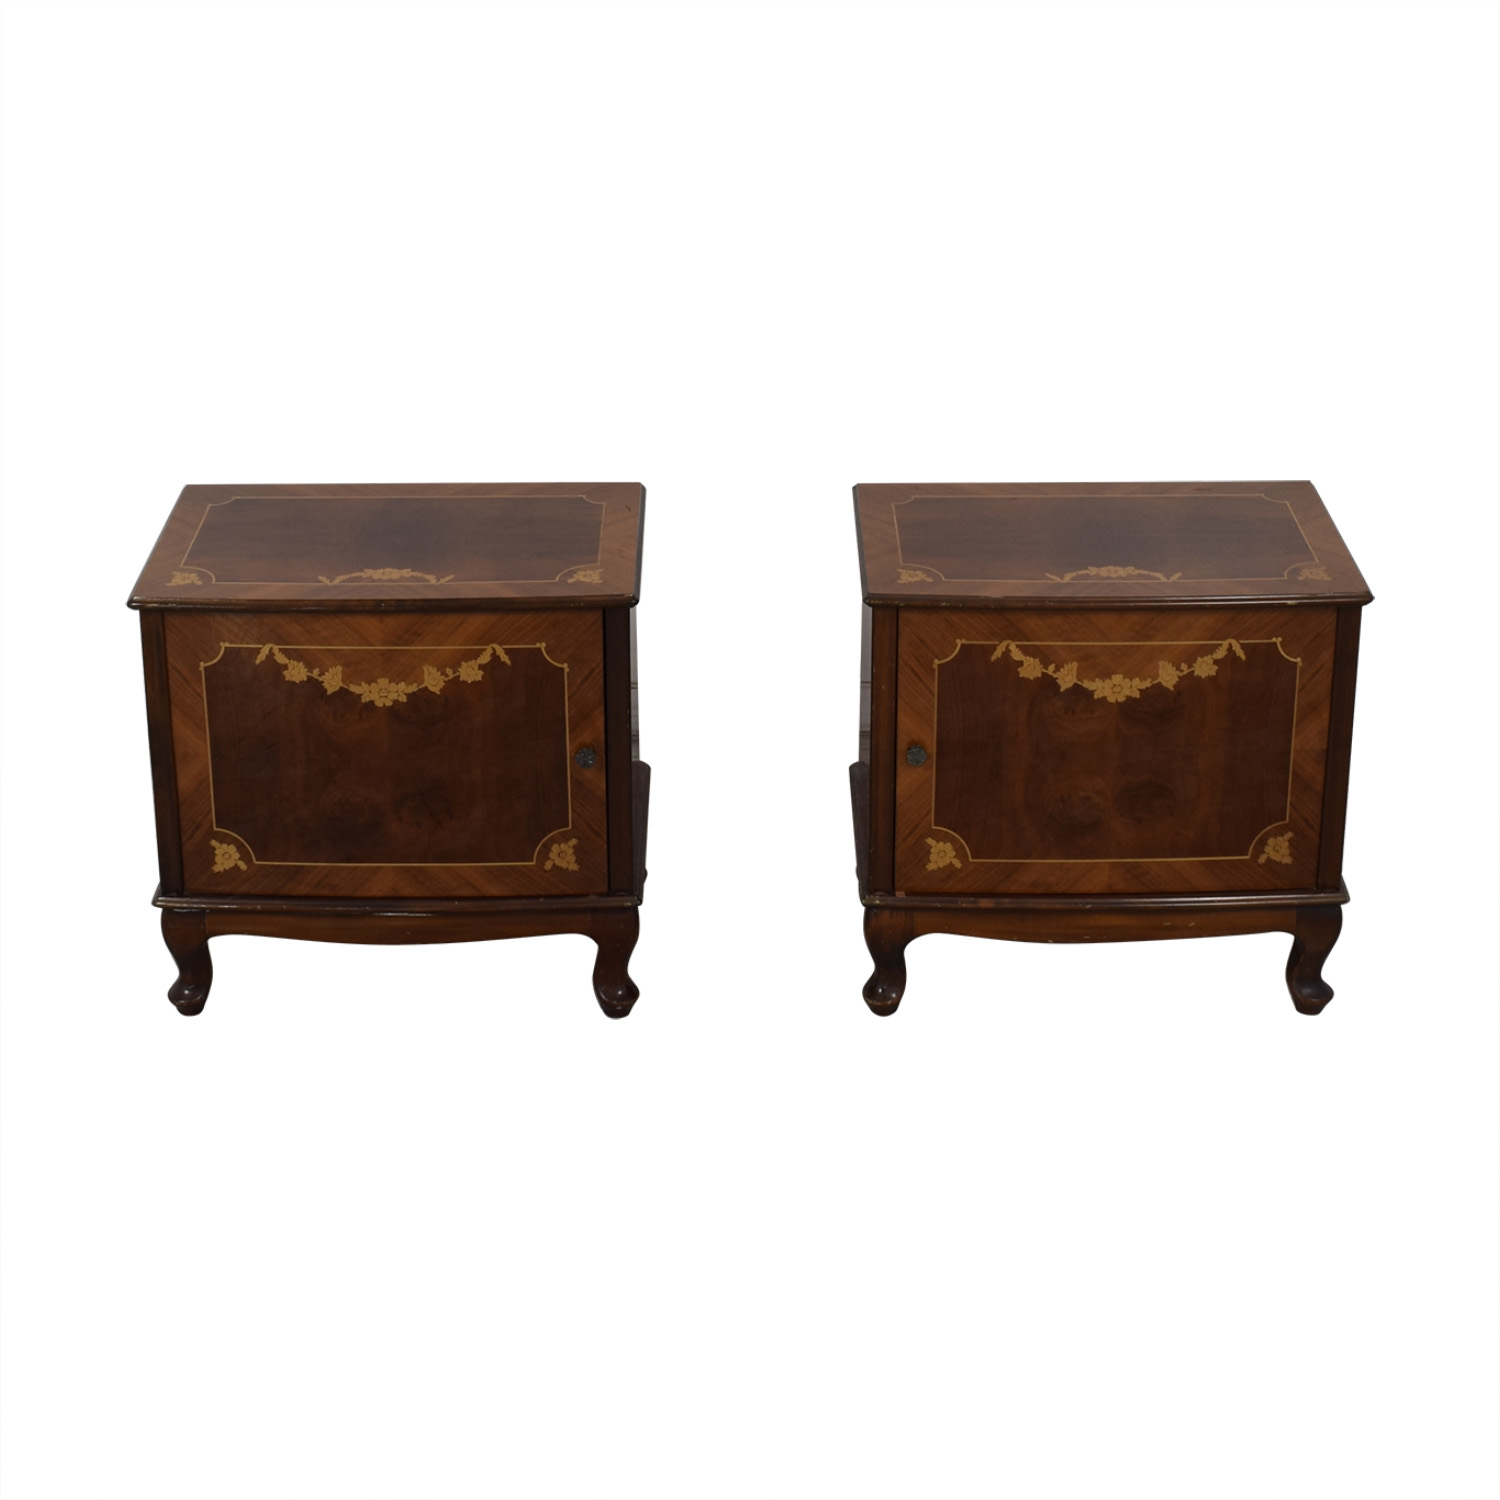 Roma Furniture Nighstands coupon